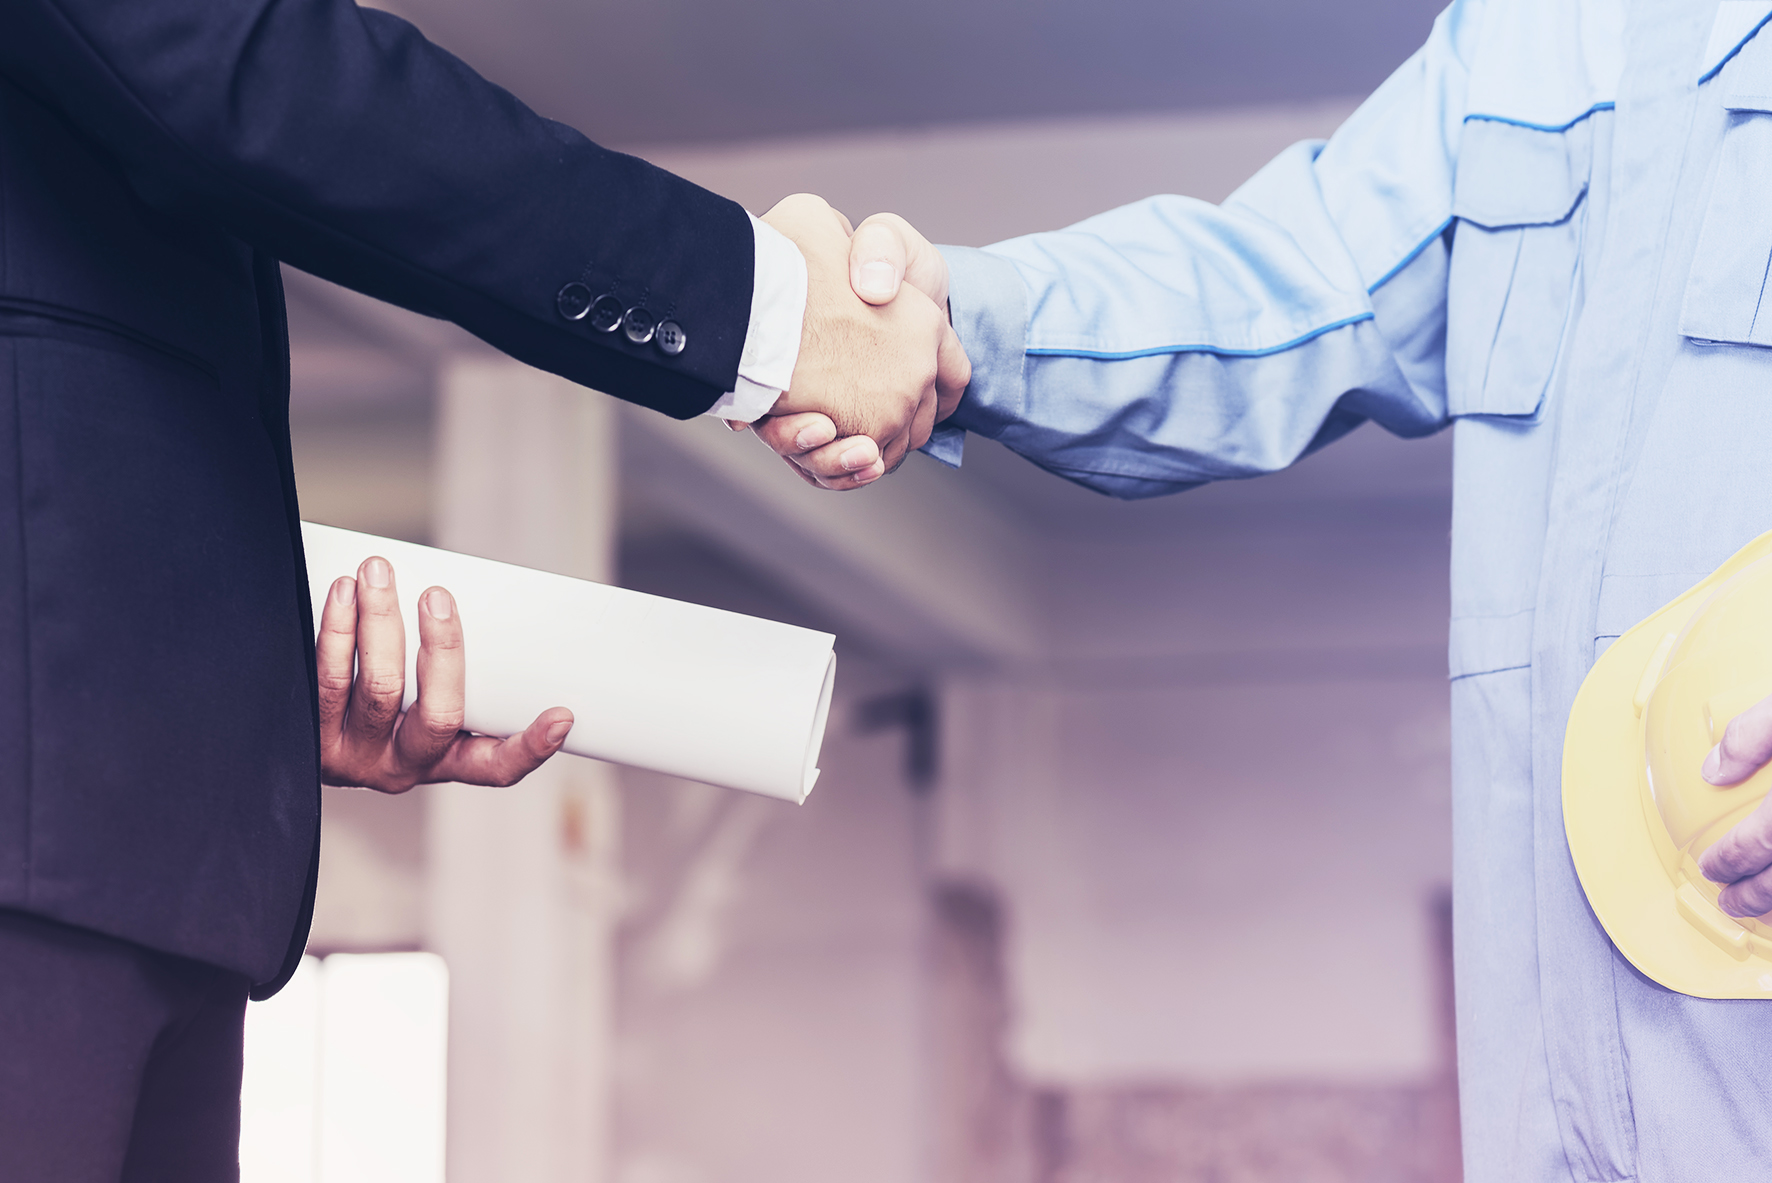 Architect engineer shaking hands with businessman on site,  Teamwork cooperation success collaboration concept